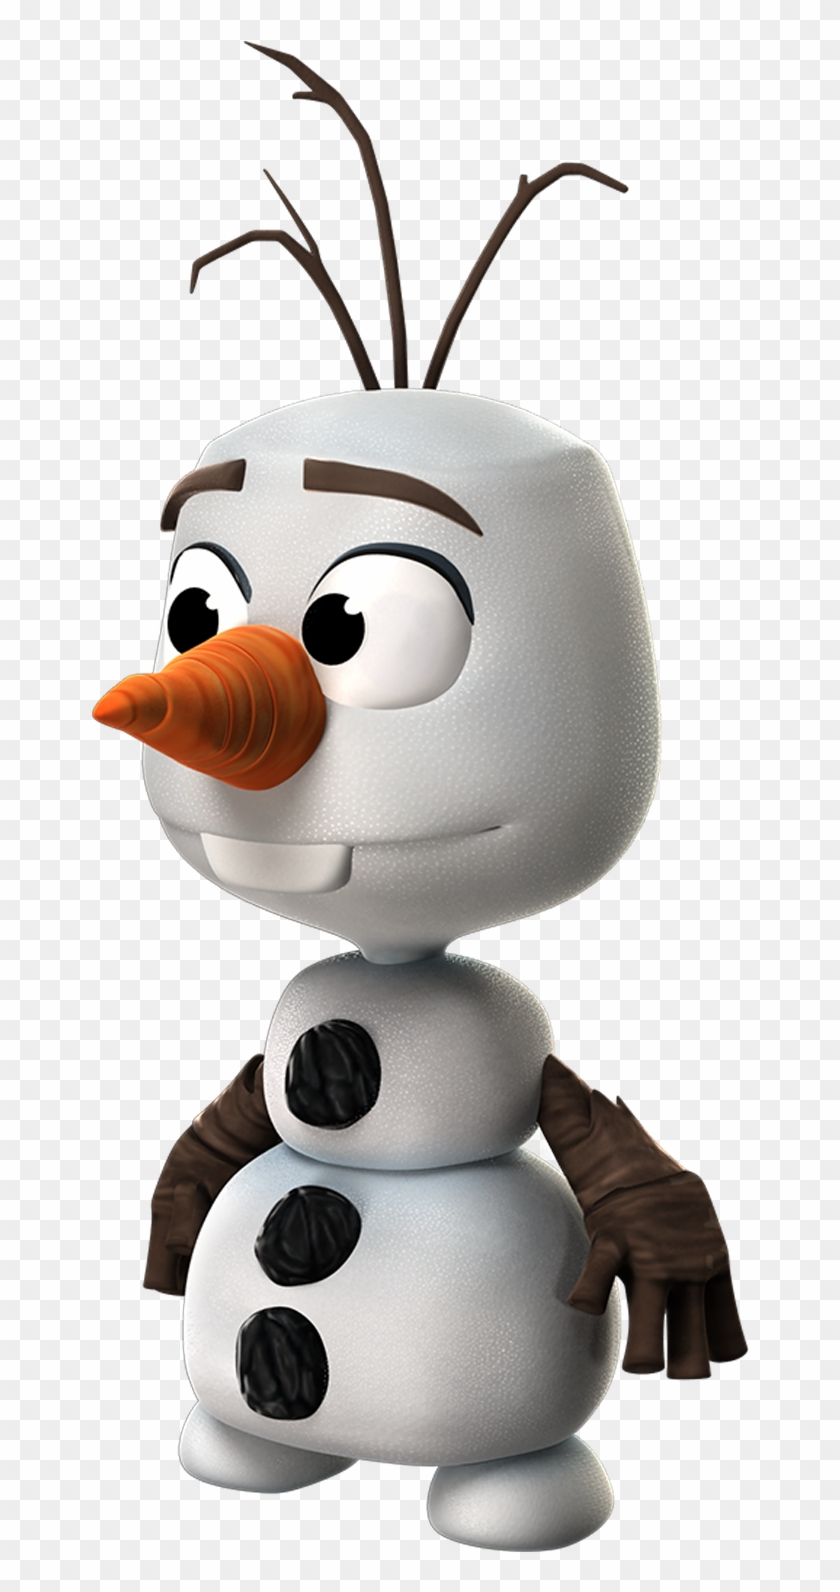 Frozen Olaf Png Free Download - Frozen Olaf Mini Png #339206